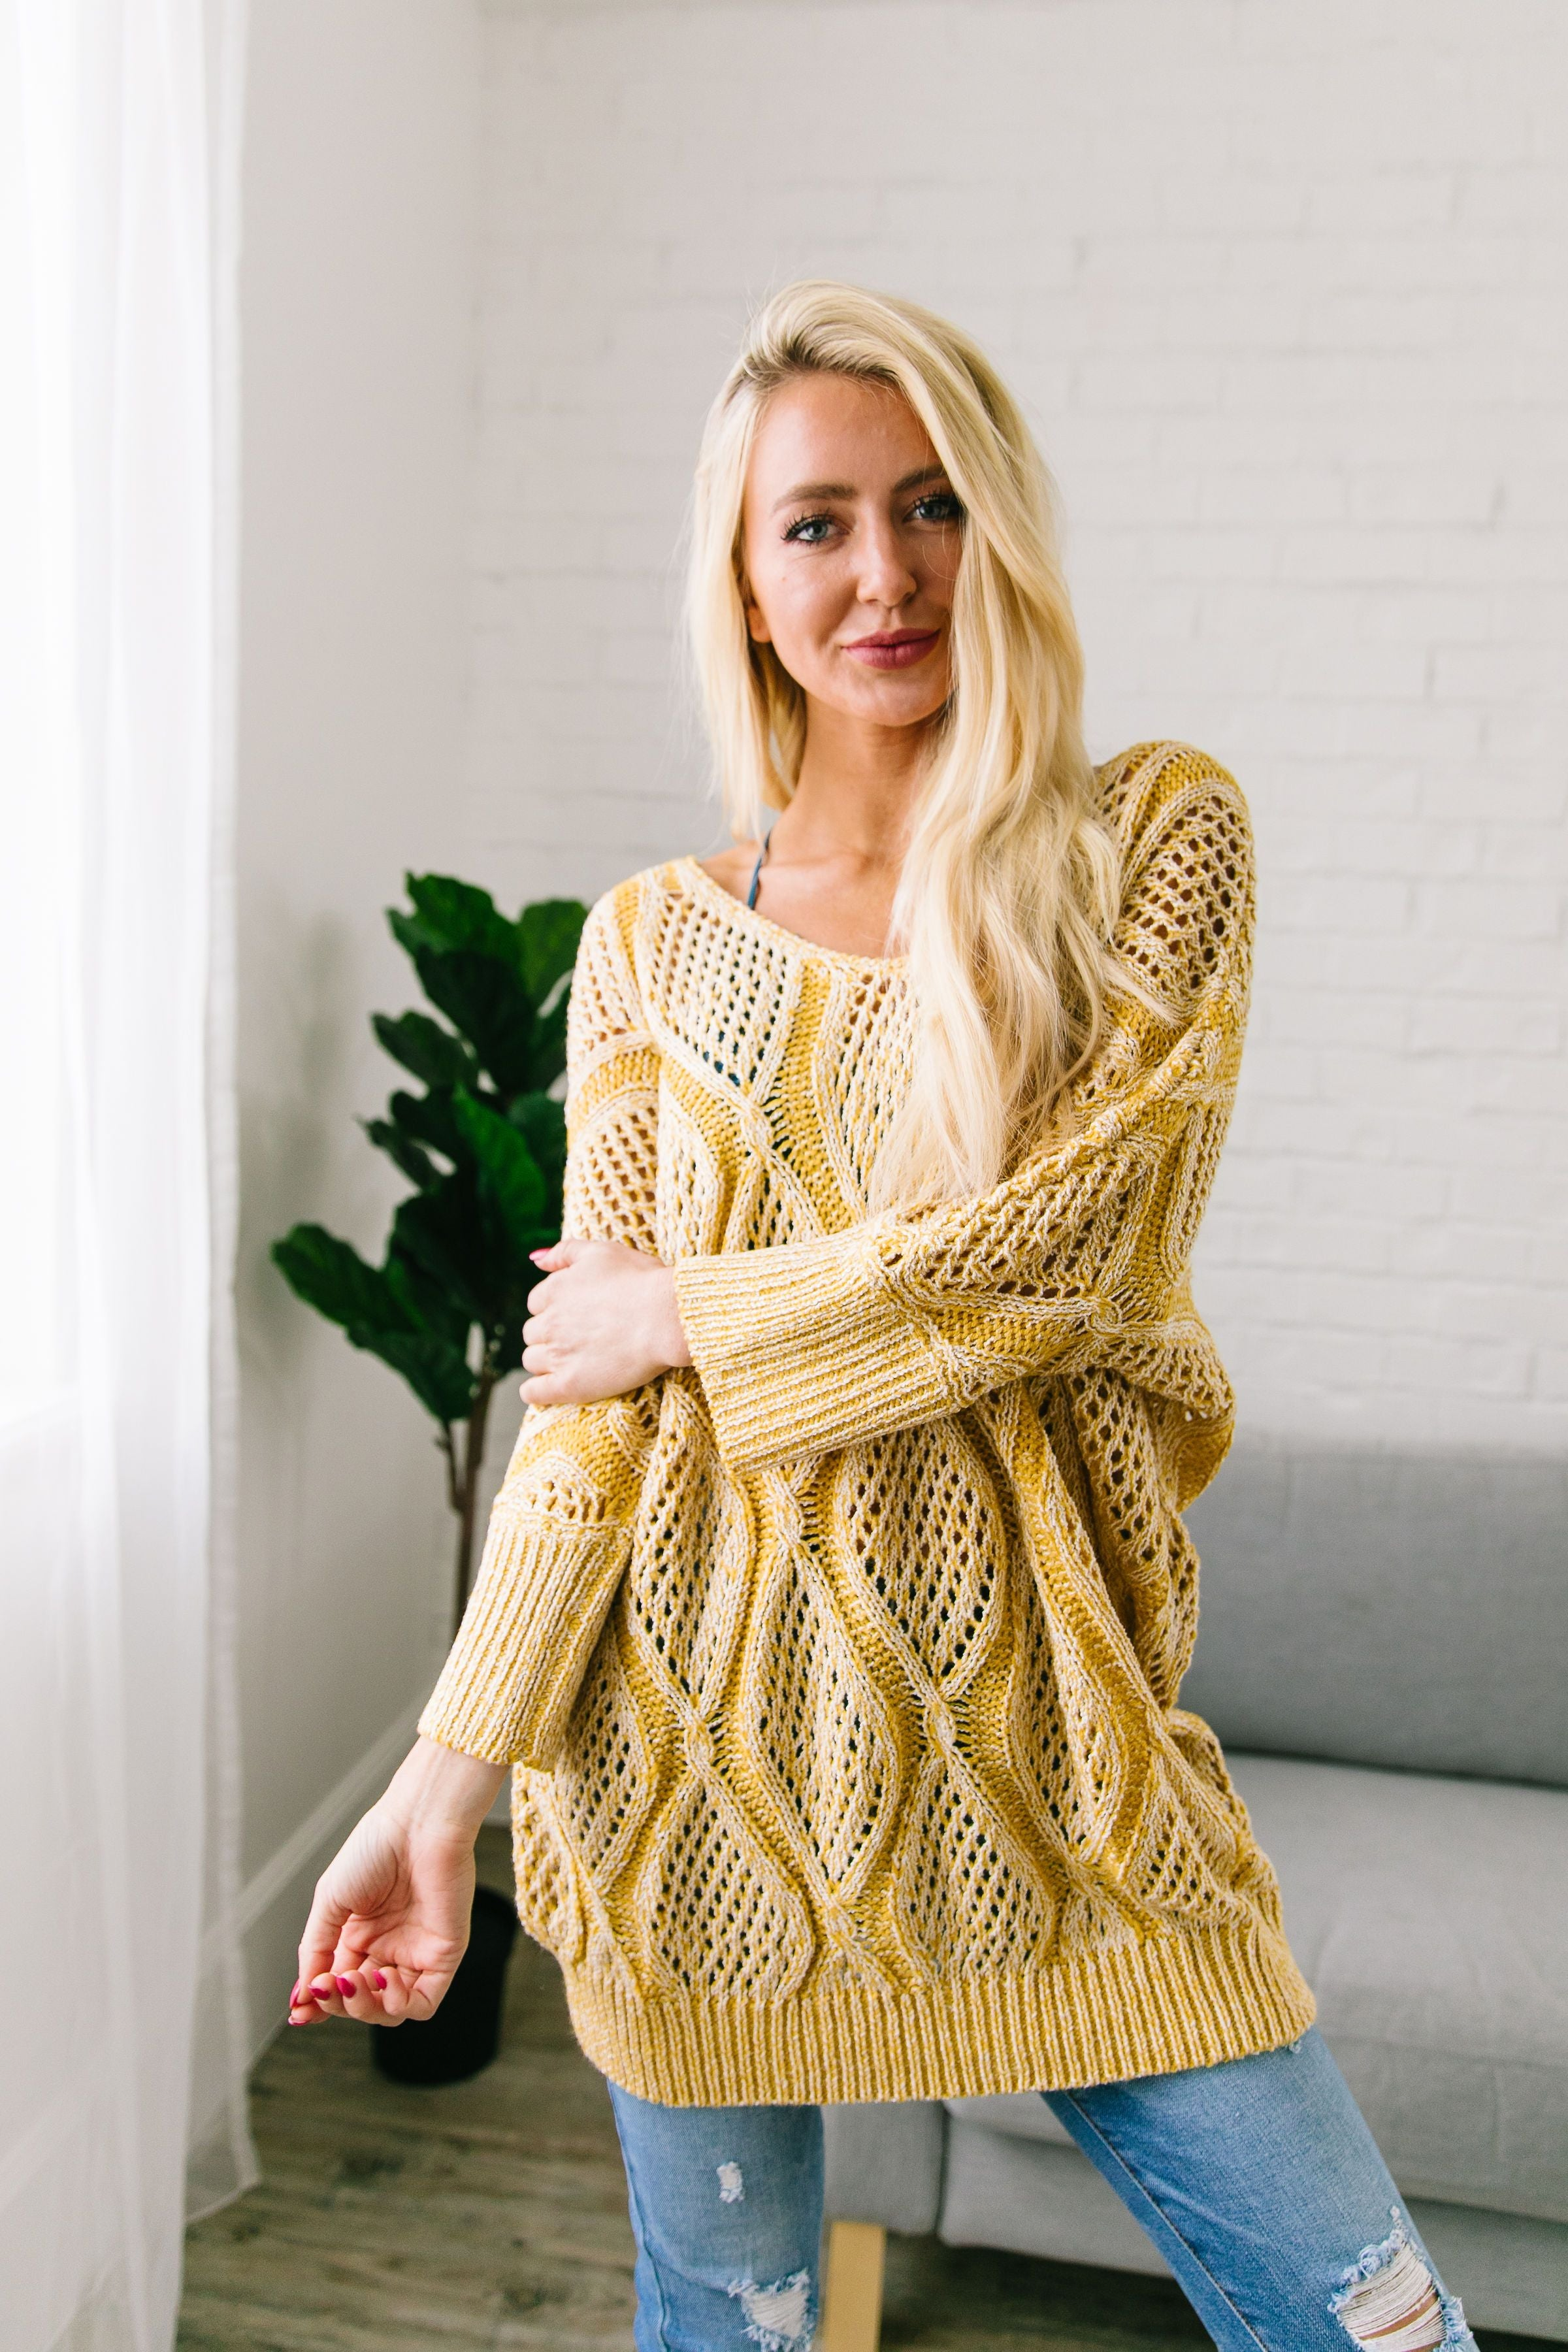 Bring On The Sun Spring Sweater - ALL SALES FINAL